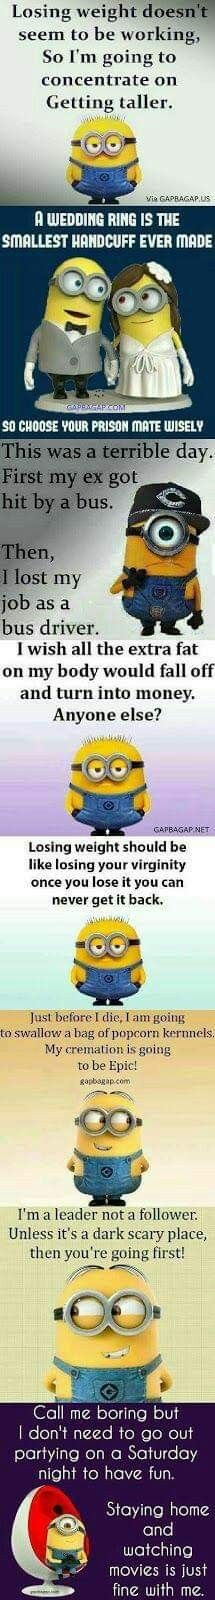 Super Funny Pictures Of Girls Hilarious Minions Quotes Ideas Funny Minion Memes, Minions Quotes, Crazy Funny Memes, Jokes Quotes, Funny Jokes, Minions Minions, Hilarious Sayings, Quotable Quotes, Wisdom Quotes